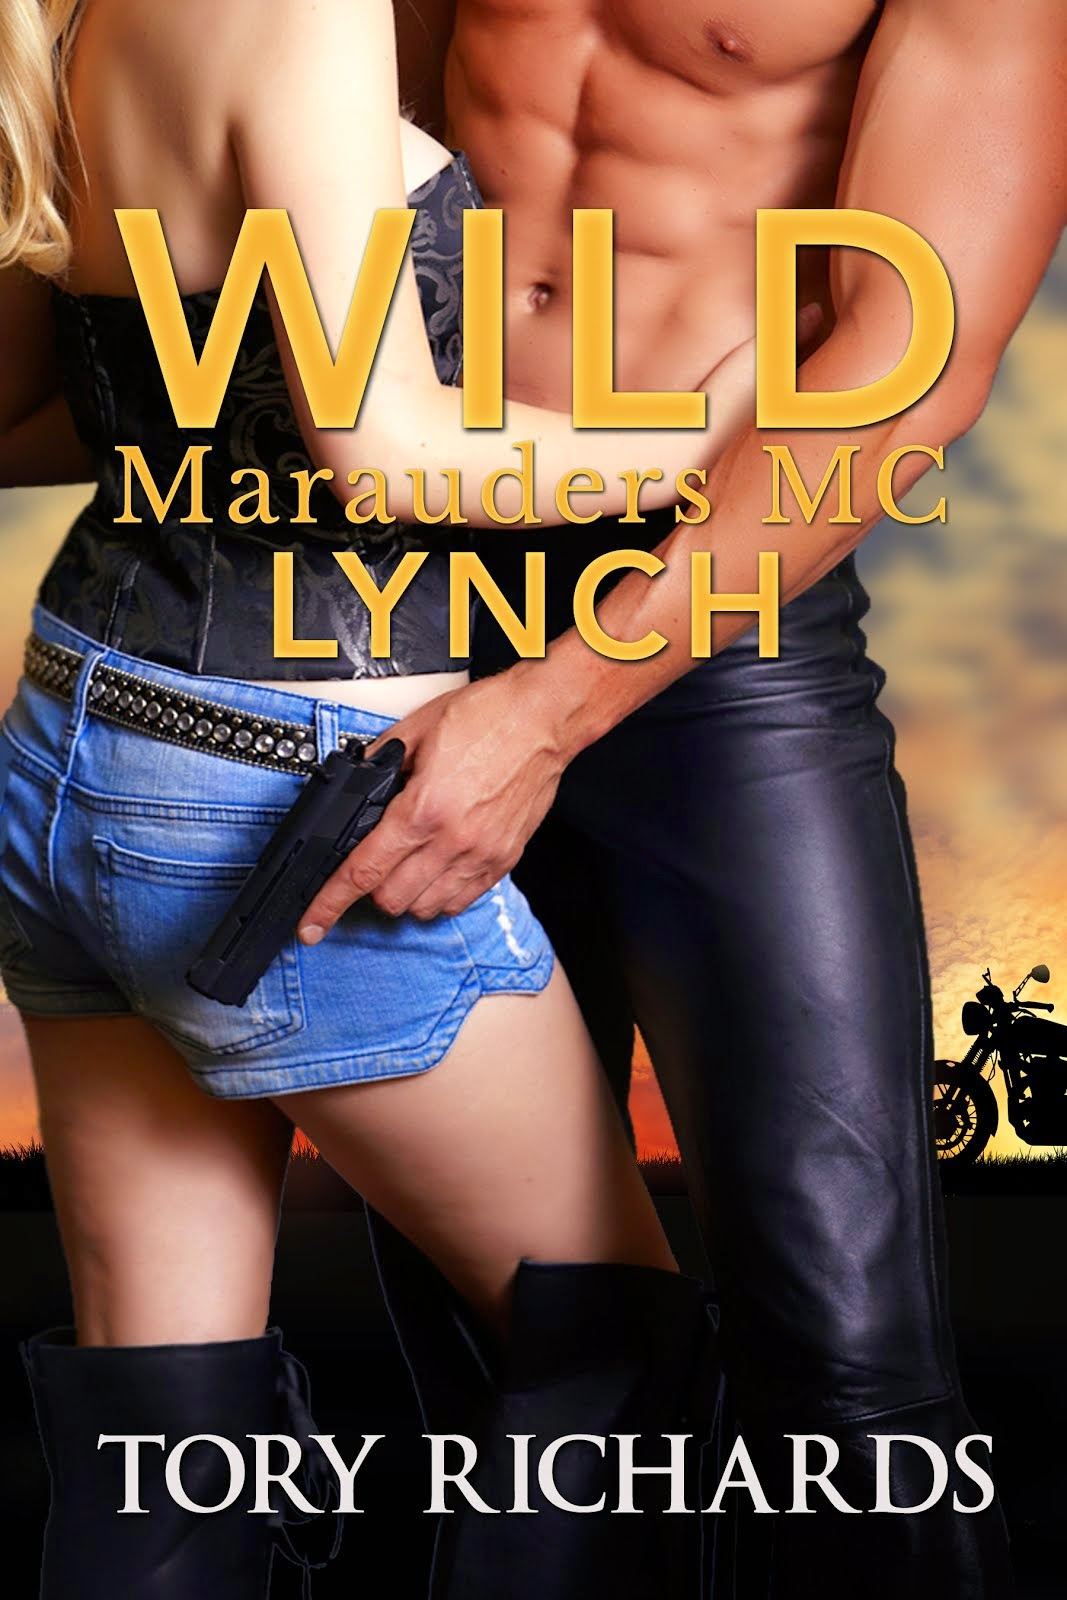 Wild Marauders MC